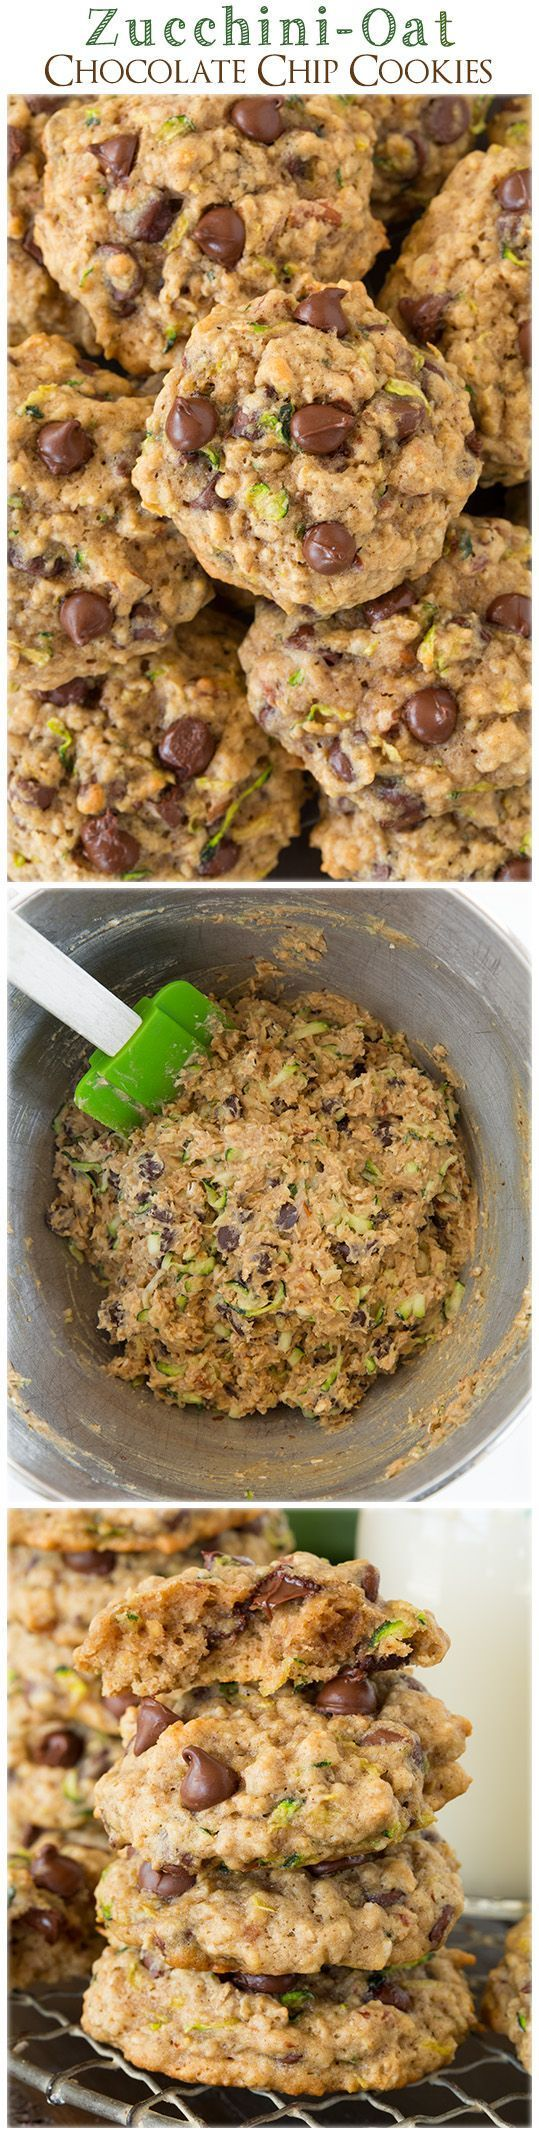 Zucchini Oat Chocolate Chip Cookies - these are the best use for that summer zucchini! SO good!! #recipe